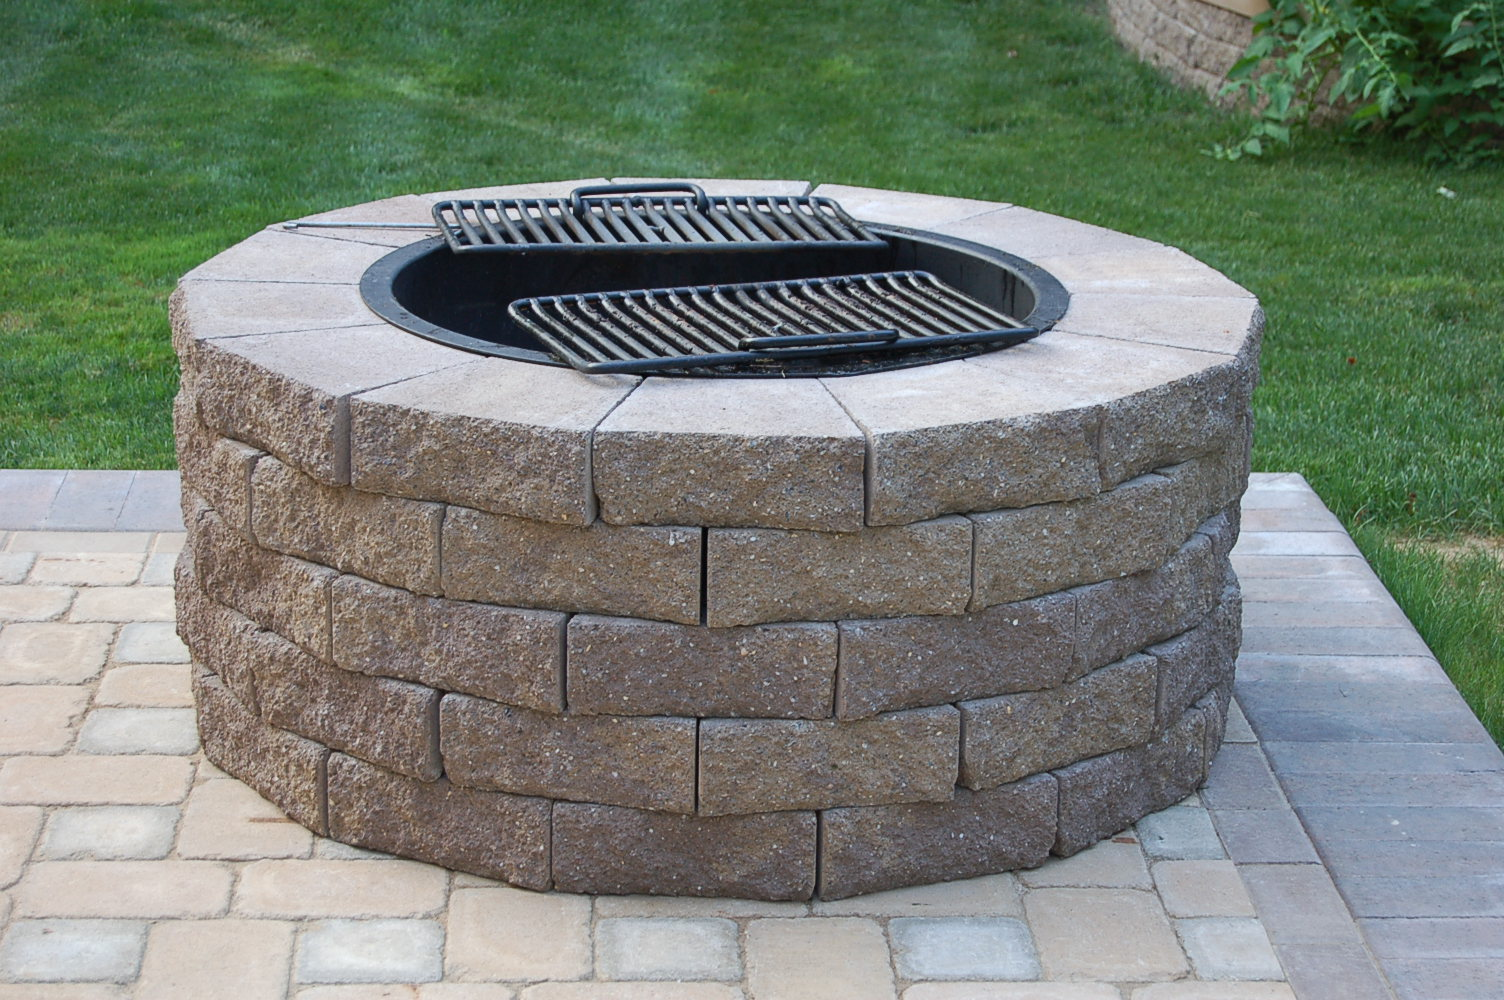 Fire Pit Cooking Grate Fireplace Design Ideas